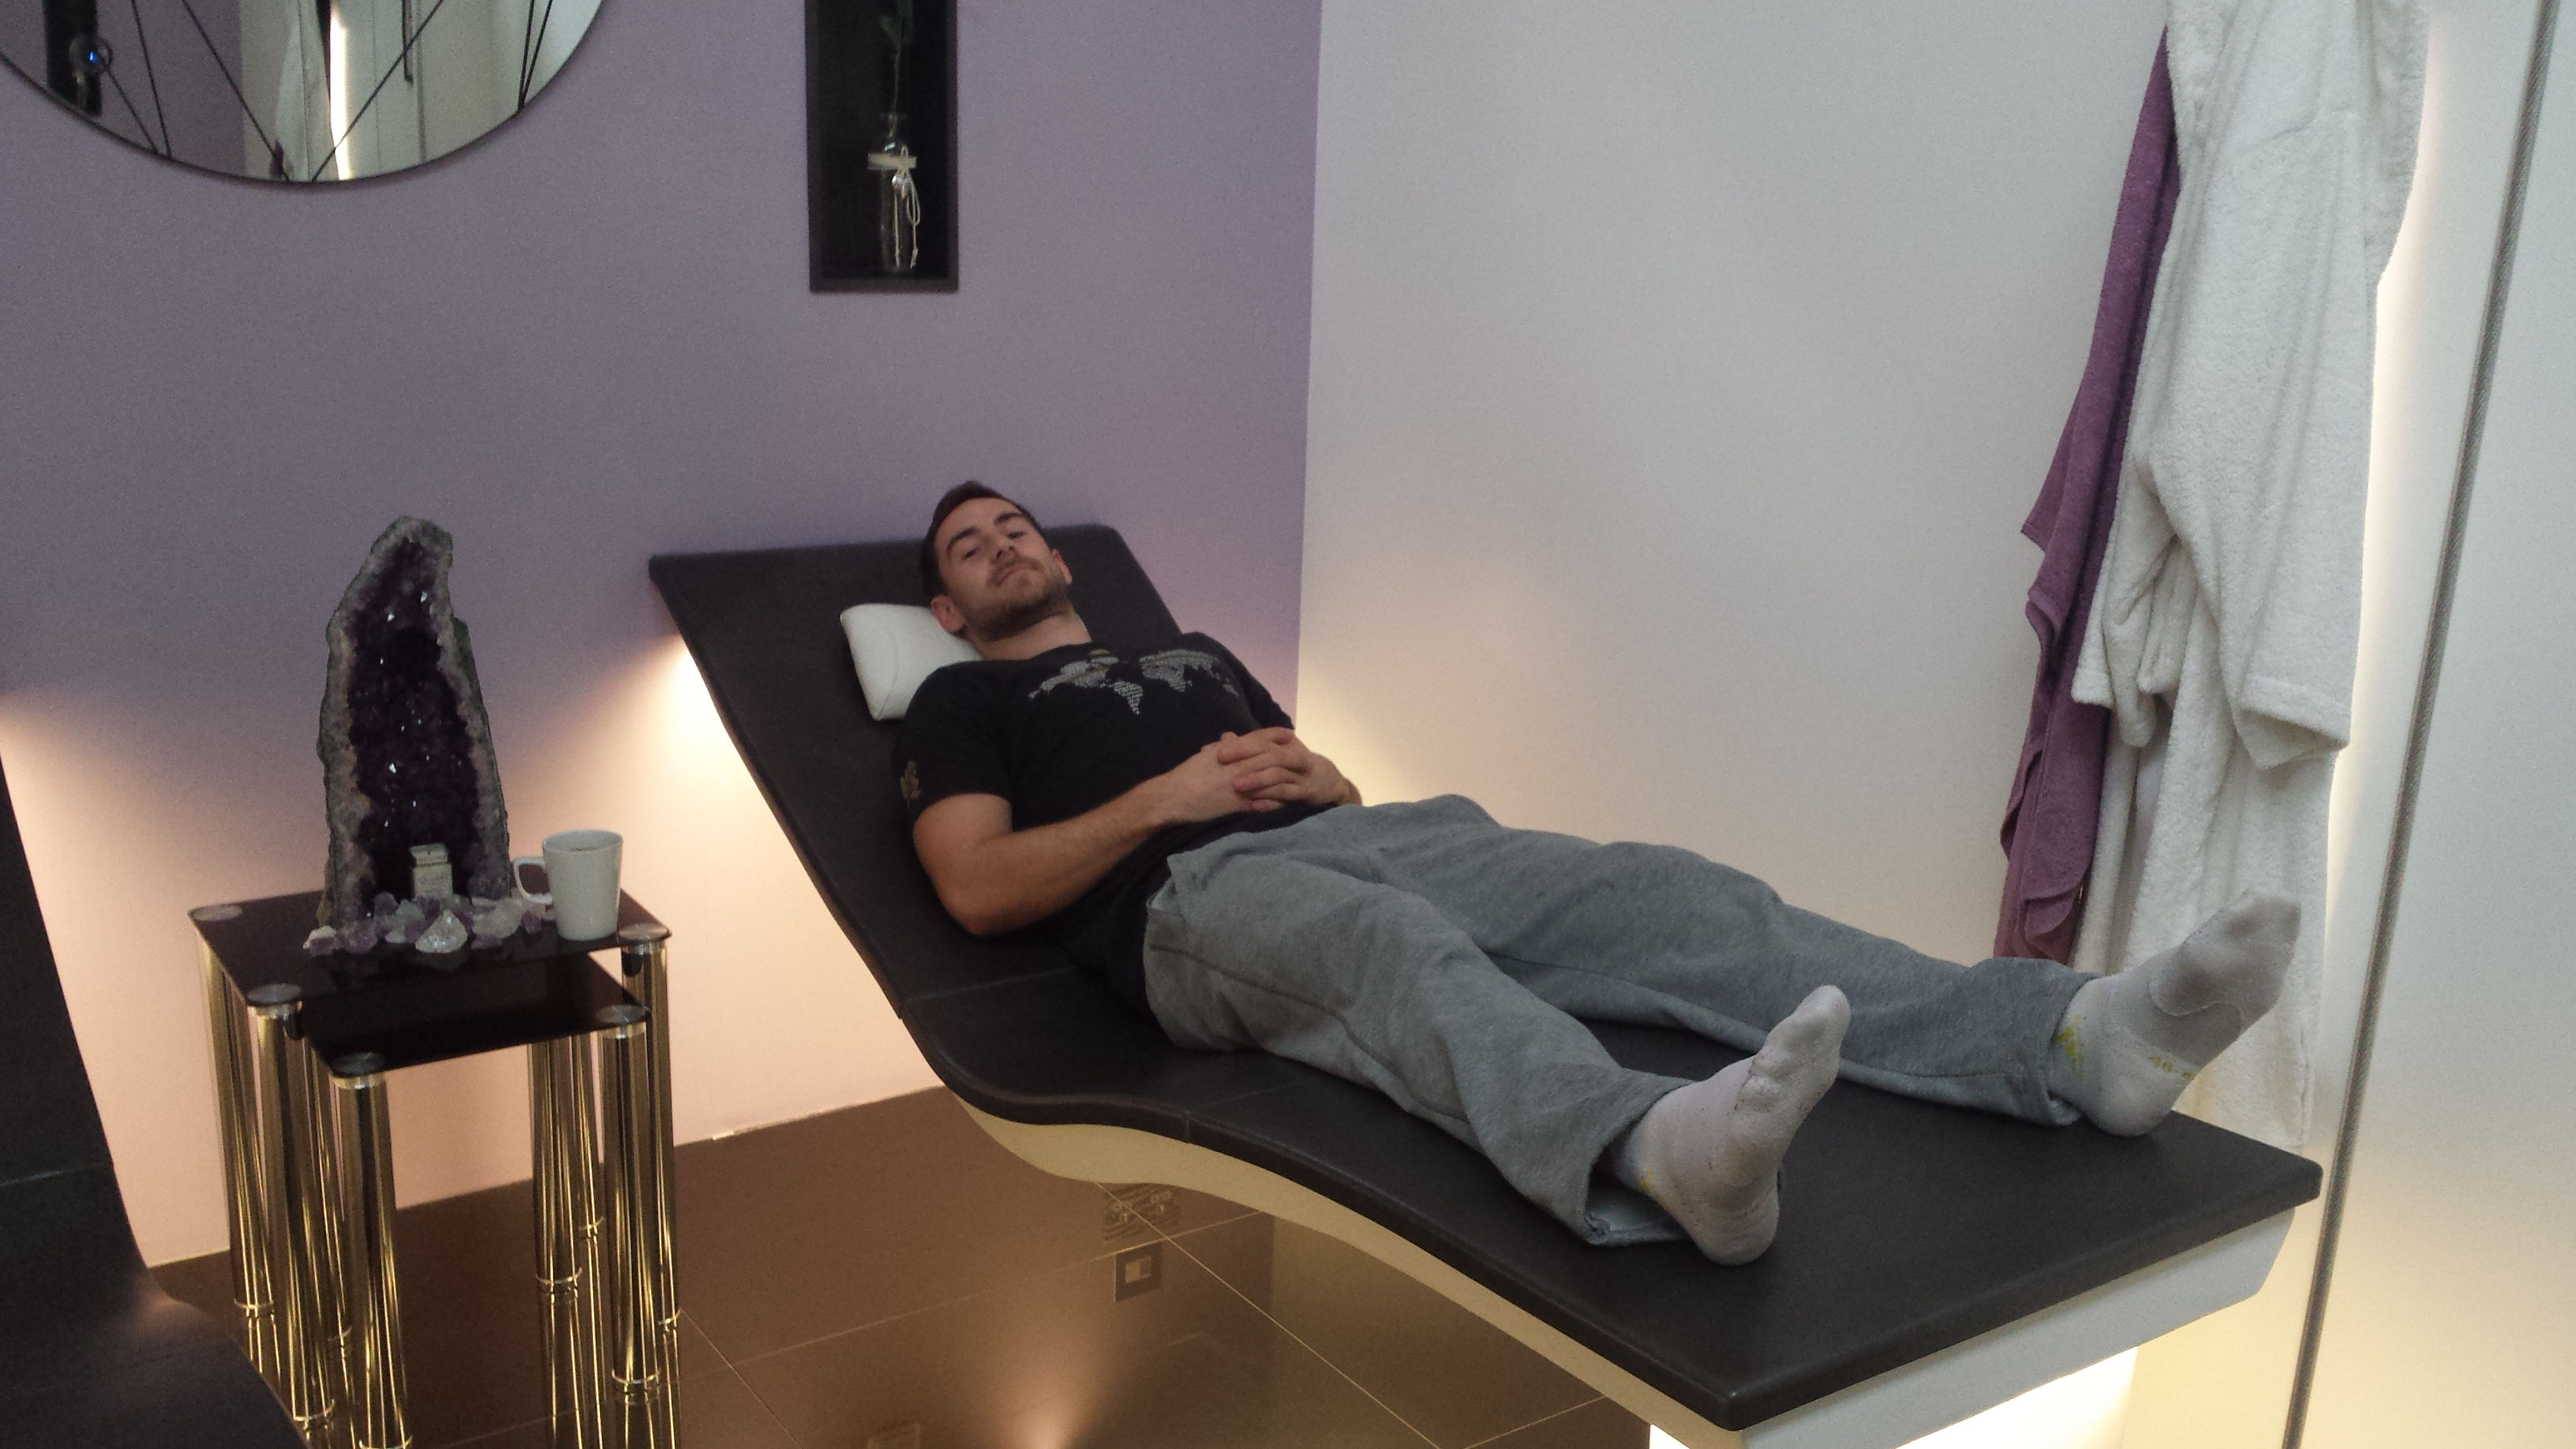 British Commonwealth silver medal winning athlete Ashley Bryant relaxing on one of the Sommerhuber heated loungers on display in the Dröm UK showroom.